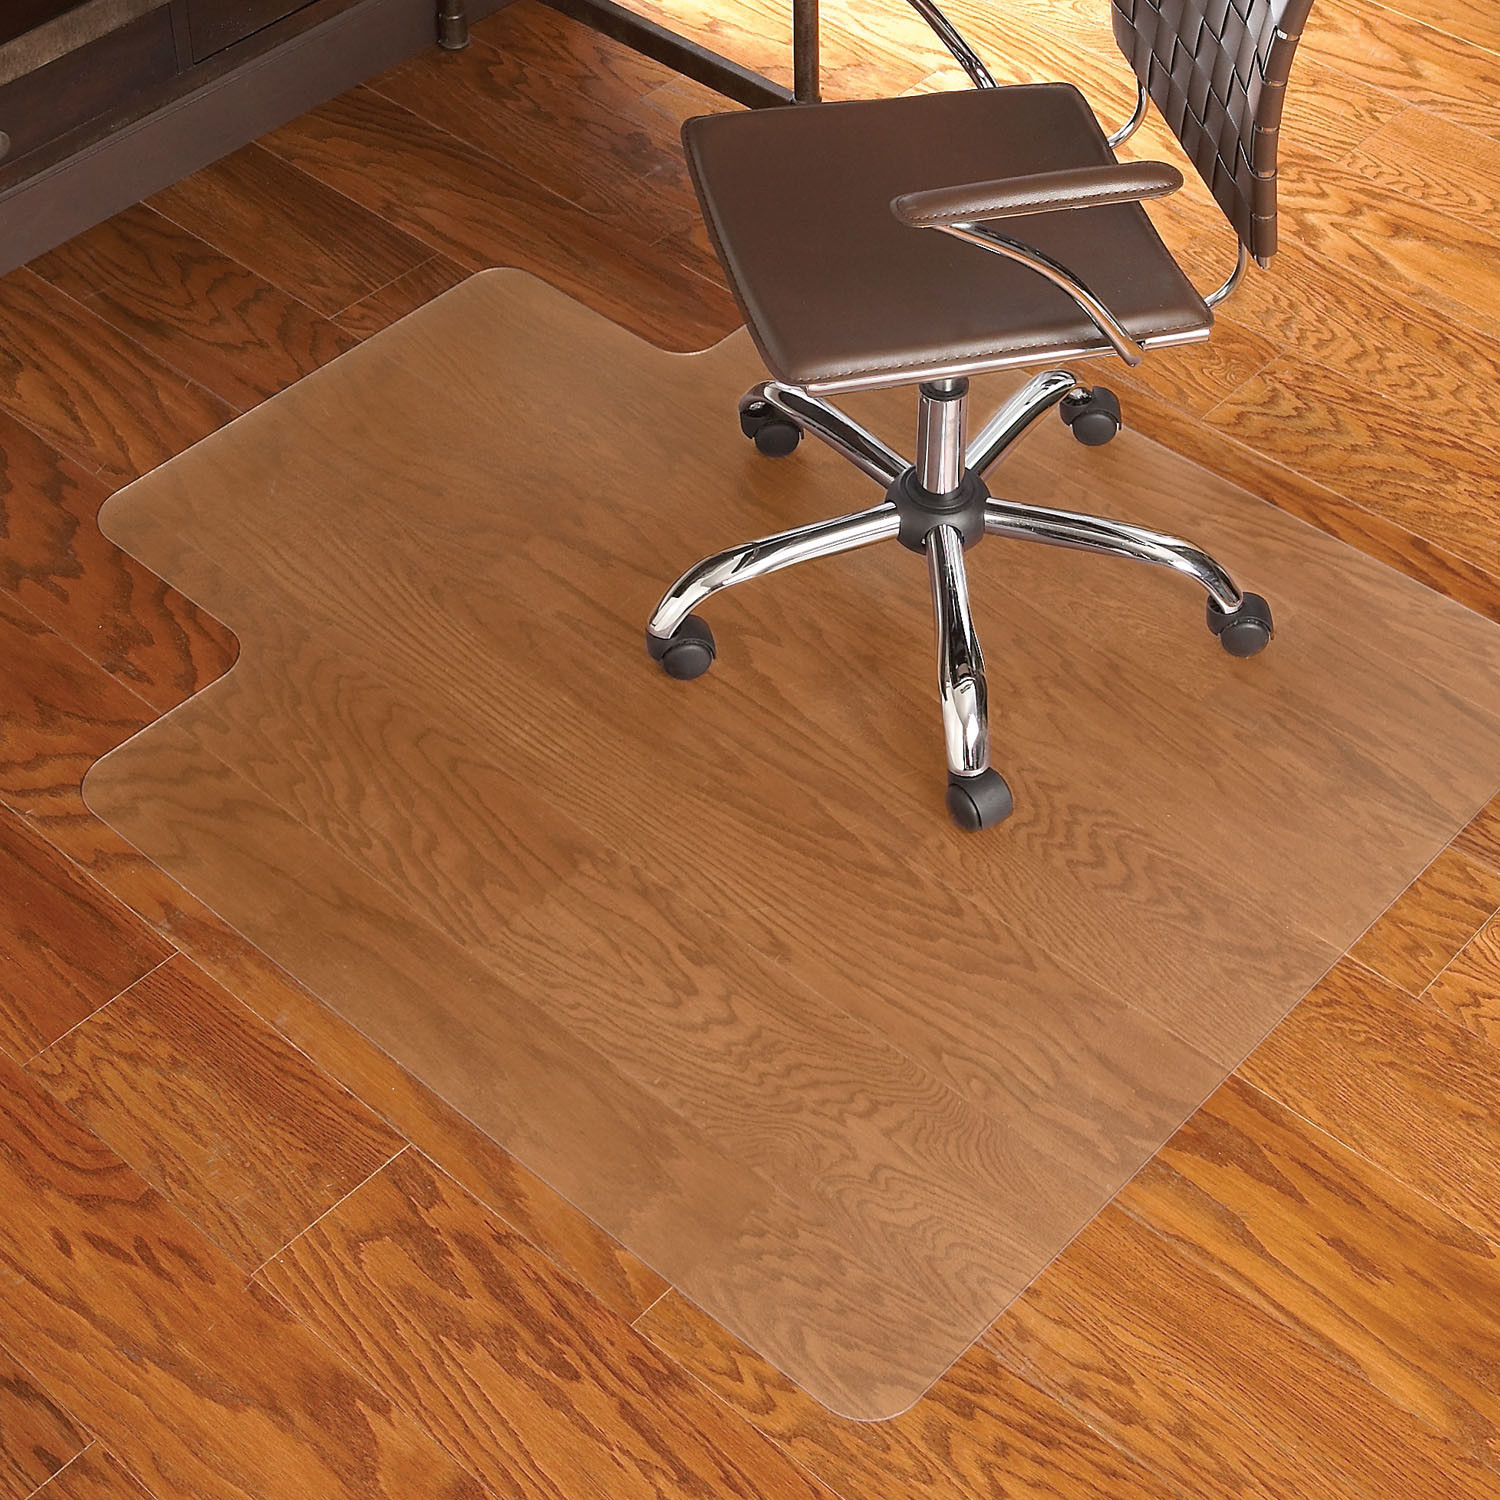 Best ideas about Office Chair Floor Mat . Save or Pin ES Robbins EverLife Hard Floor fice Chair Mat & Reviews Now.